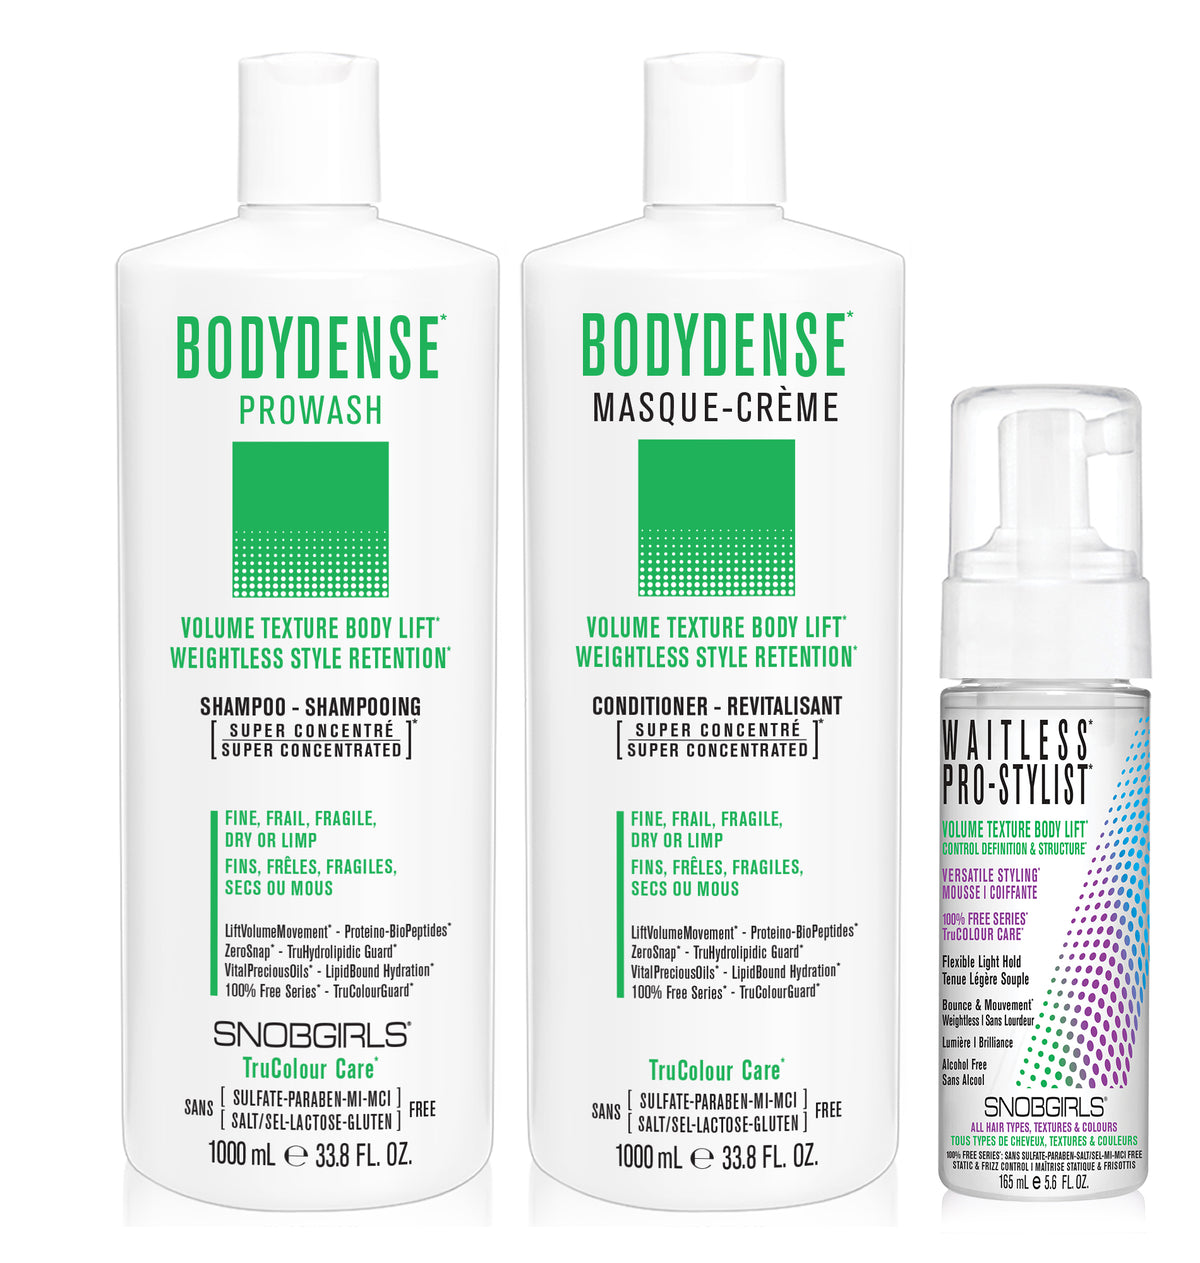 DUO BODYDENSE Bundle- 1 Shampoo 33.8oz. with 1 Conditioner 33.8oz and 1 Styling Mousse - SNOBGIRLS.com